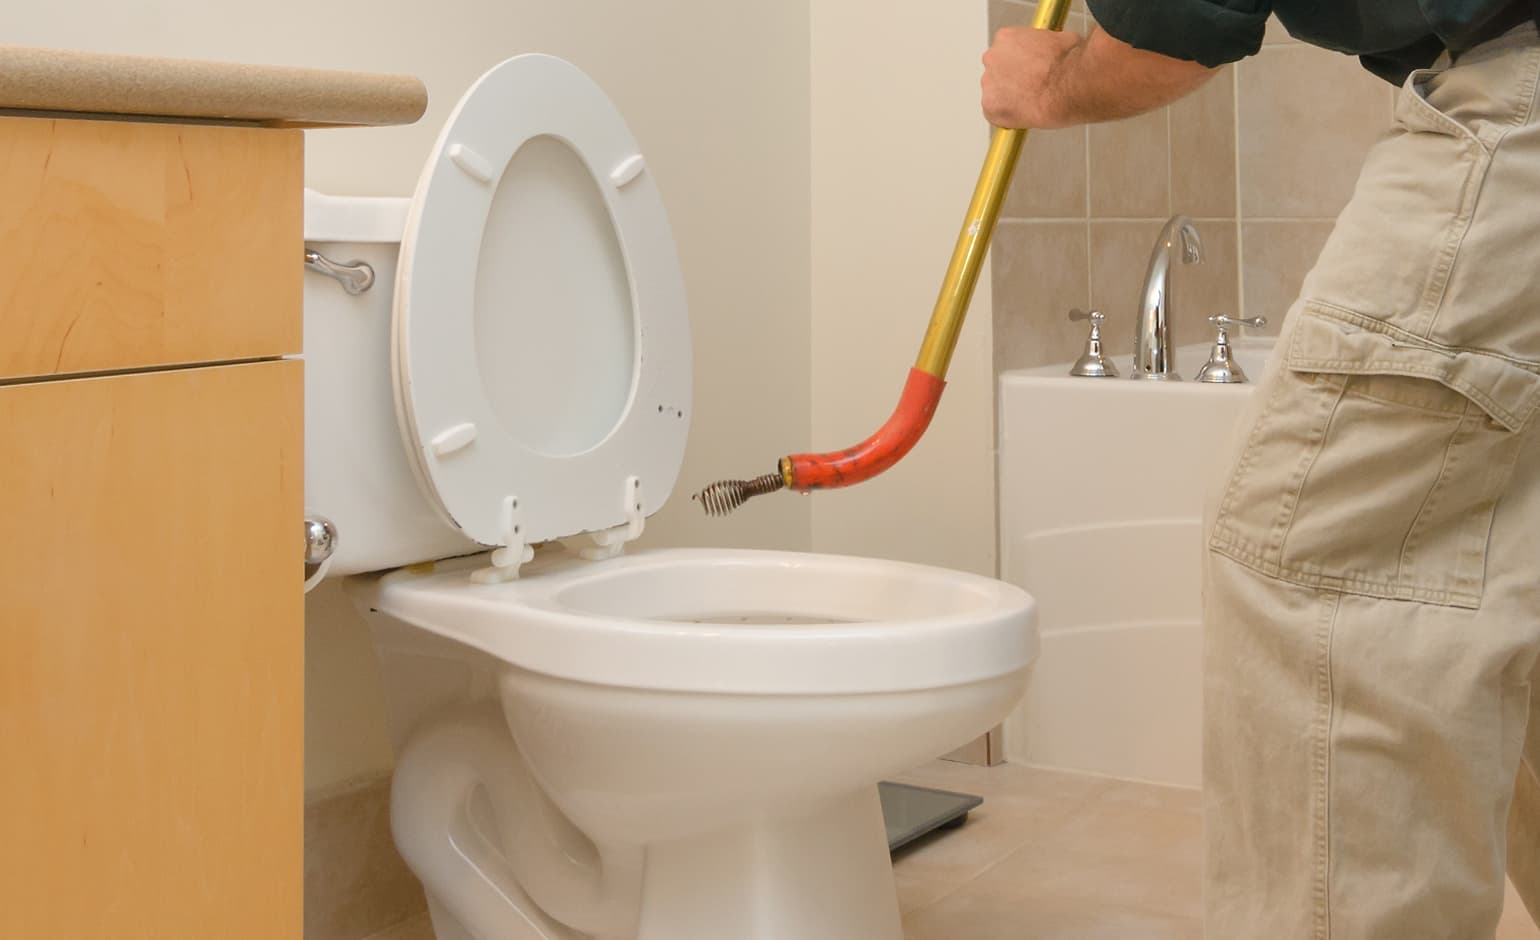 Toilet Clogs Amp Blocked Nj Nj Toilet Clog Services